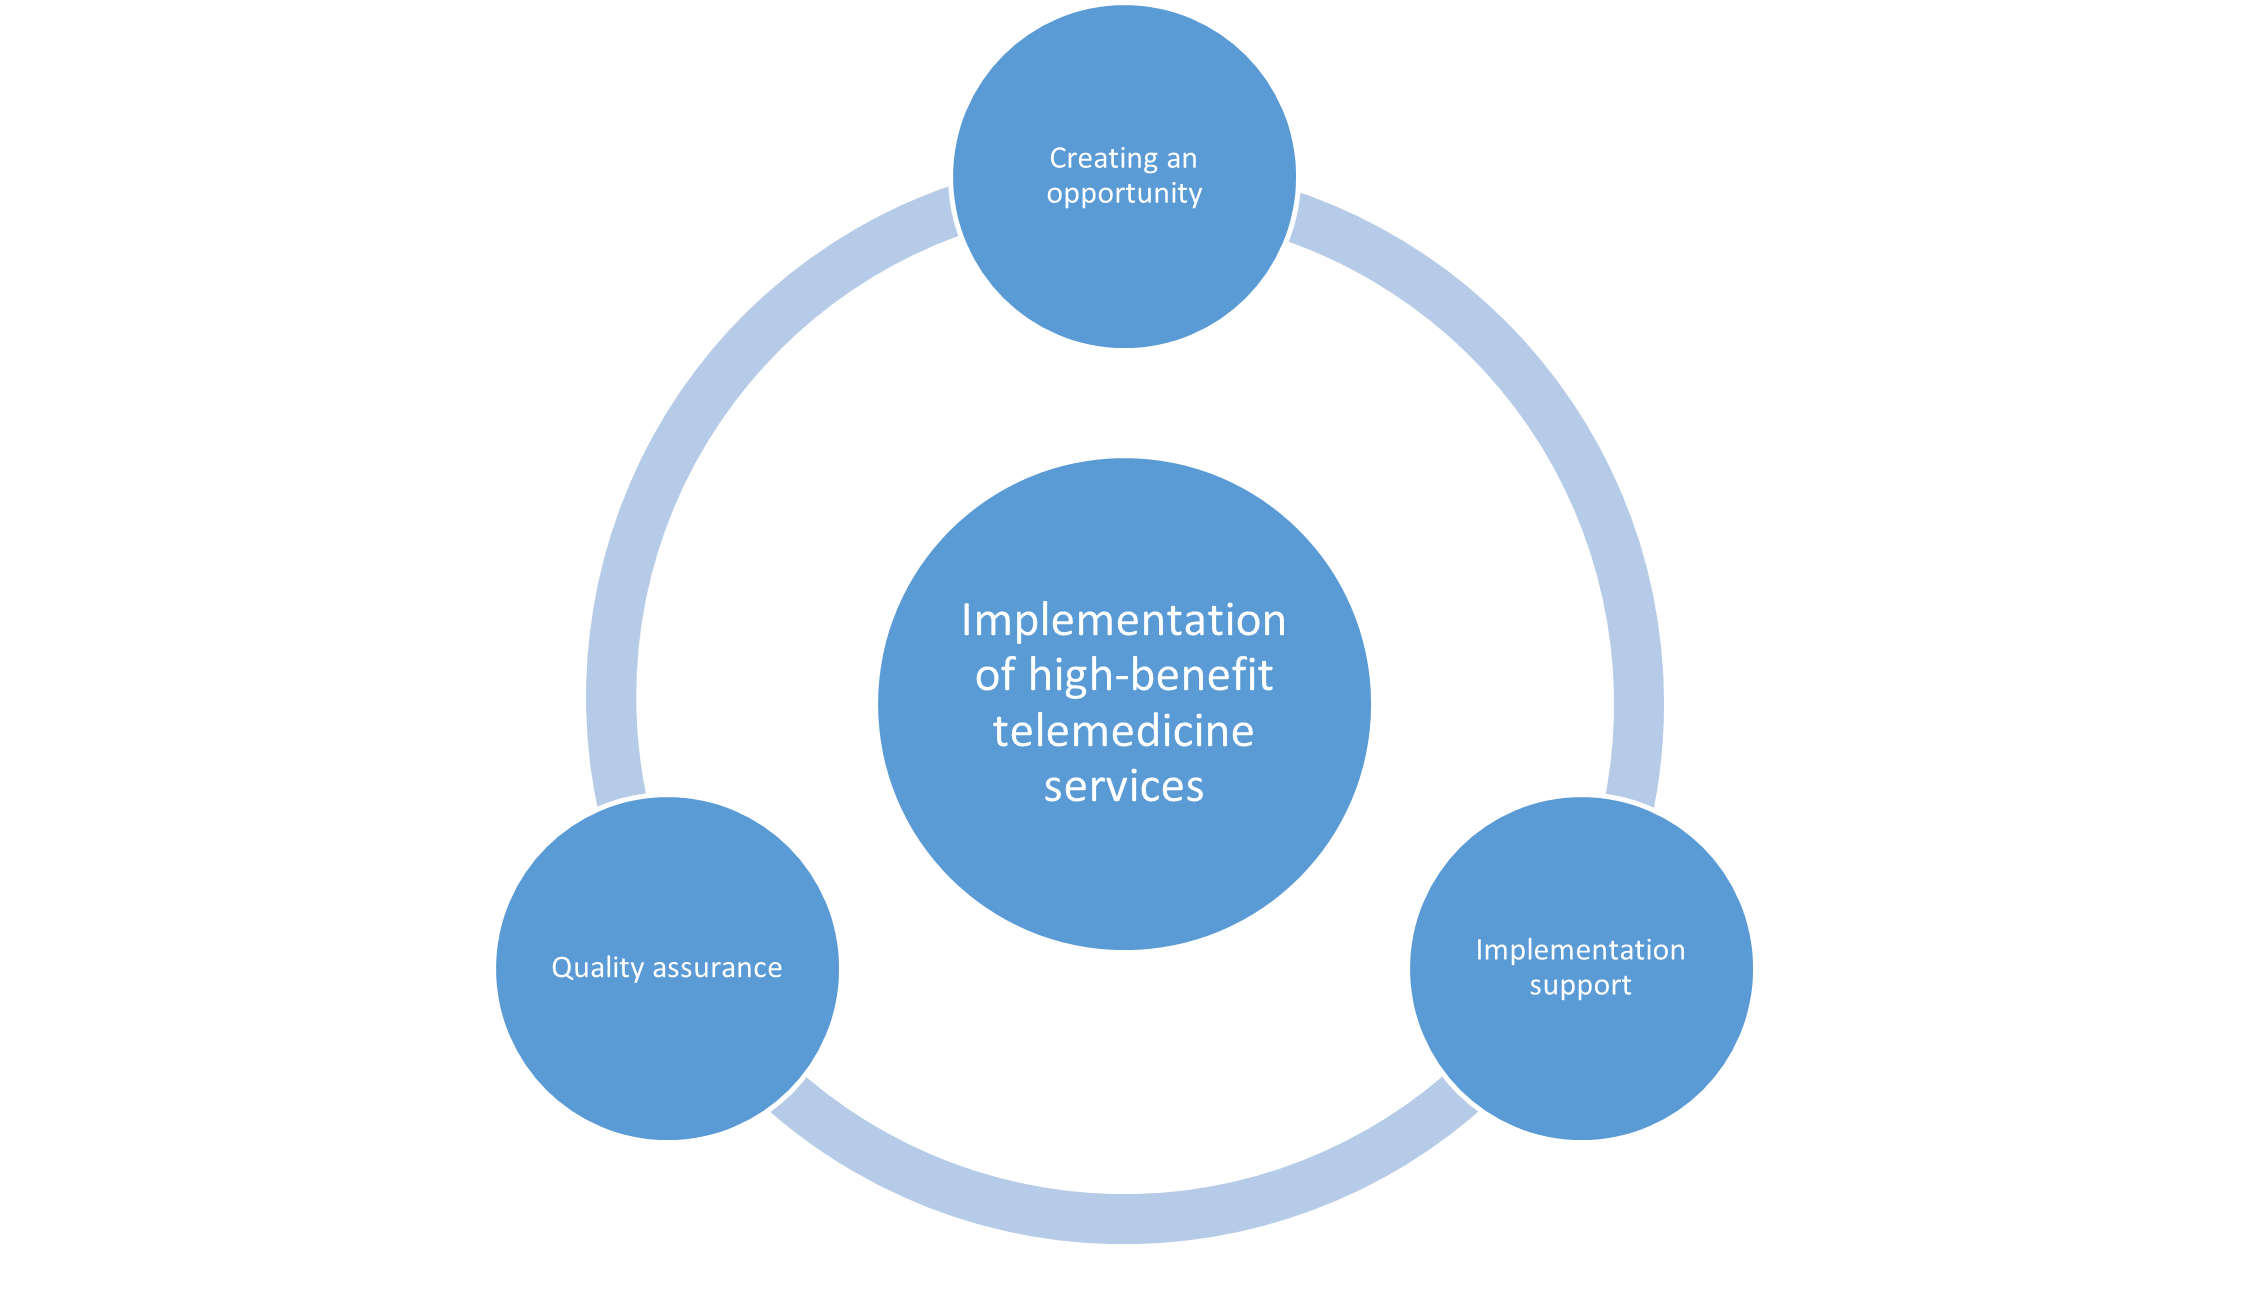 Figure 2. The role of EHIF in the development of telemedicine: creating an opportunity for its implementation through the development of remuneration models; supporting implementation through initial investment sharing; quality assurance through impact assessment and collection of user feedback.